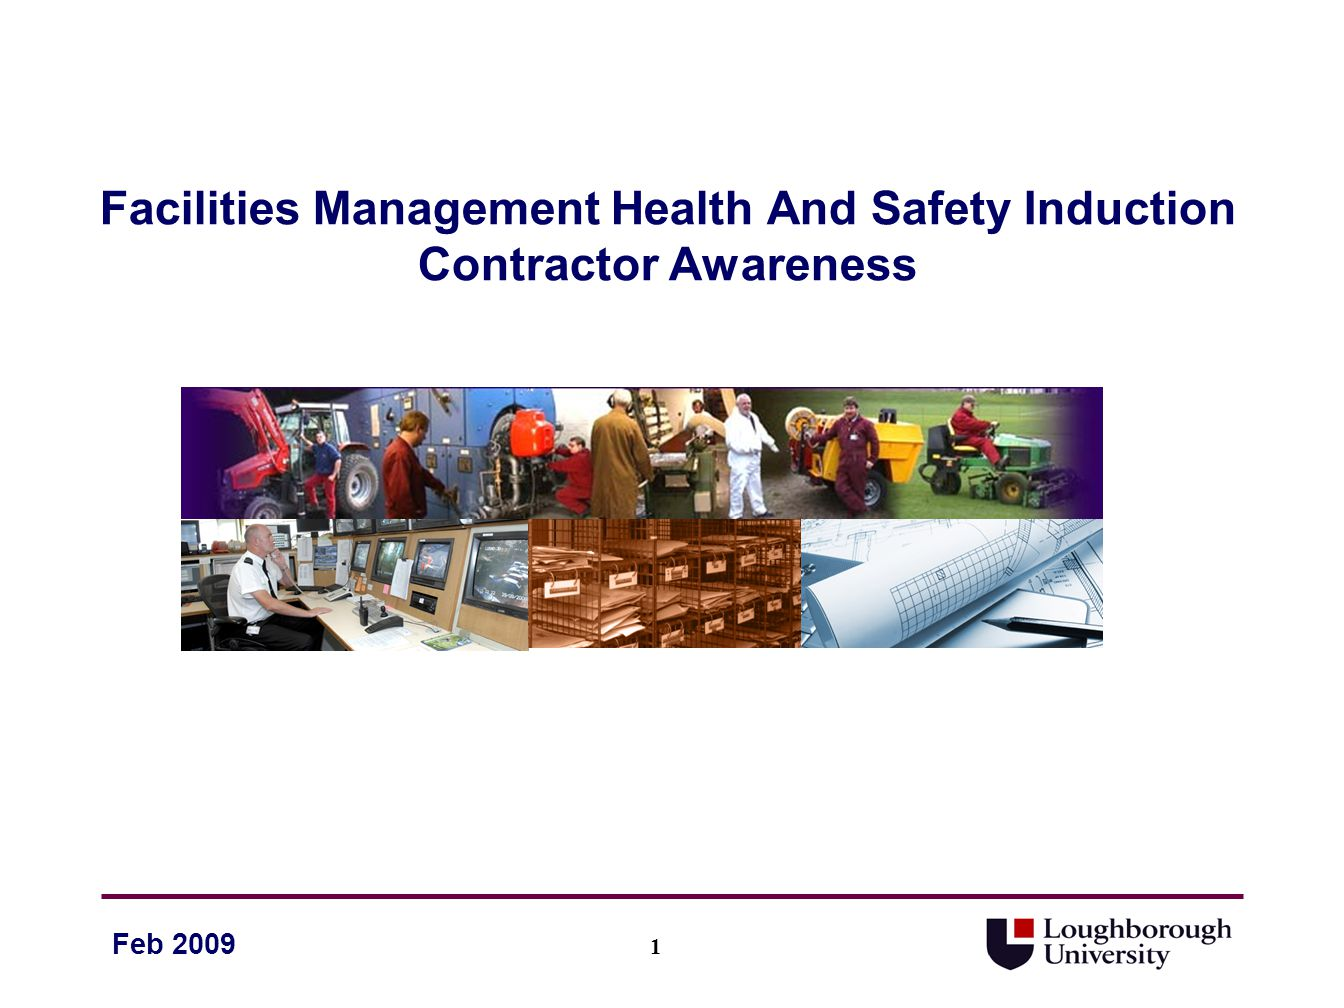 12 Feb 2009 Facilities Management Health And Safety Induction - Safe Systems Of Work Drivers must observe the highway code and speed limits – 15mph (25 kph) Suitable protective clothing should be worn when at work and personal protective equipment must be worn in designated areas and as prescribed in Risk Assessments - Hard hats - eye protection - suitable footwear - ear defenders etc All staff, contractors and self-employed must stick to agreed procedures and utilise permits to work as appropriate Contractors MUST register ANY work of an INTRUSIVE nature – via their sponsors – think asbestos and buried services No smoking or playing of radios in or on any University building or vehicle.